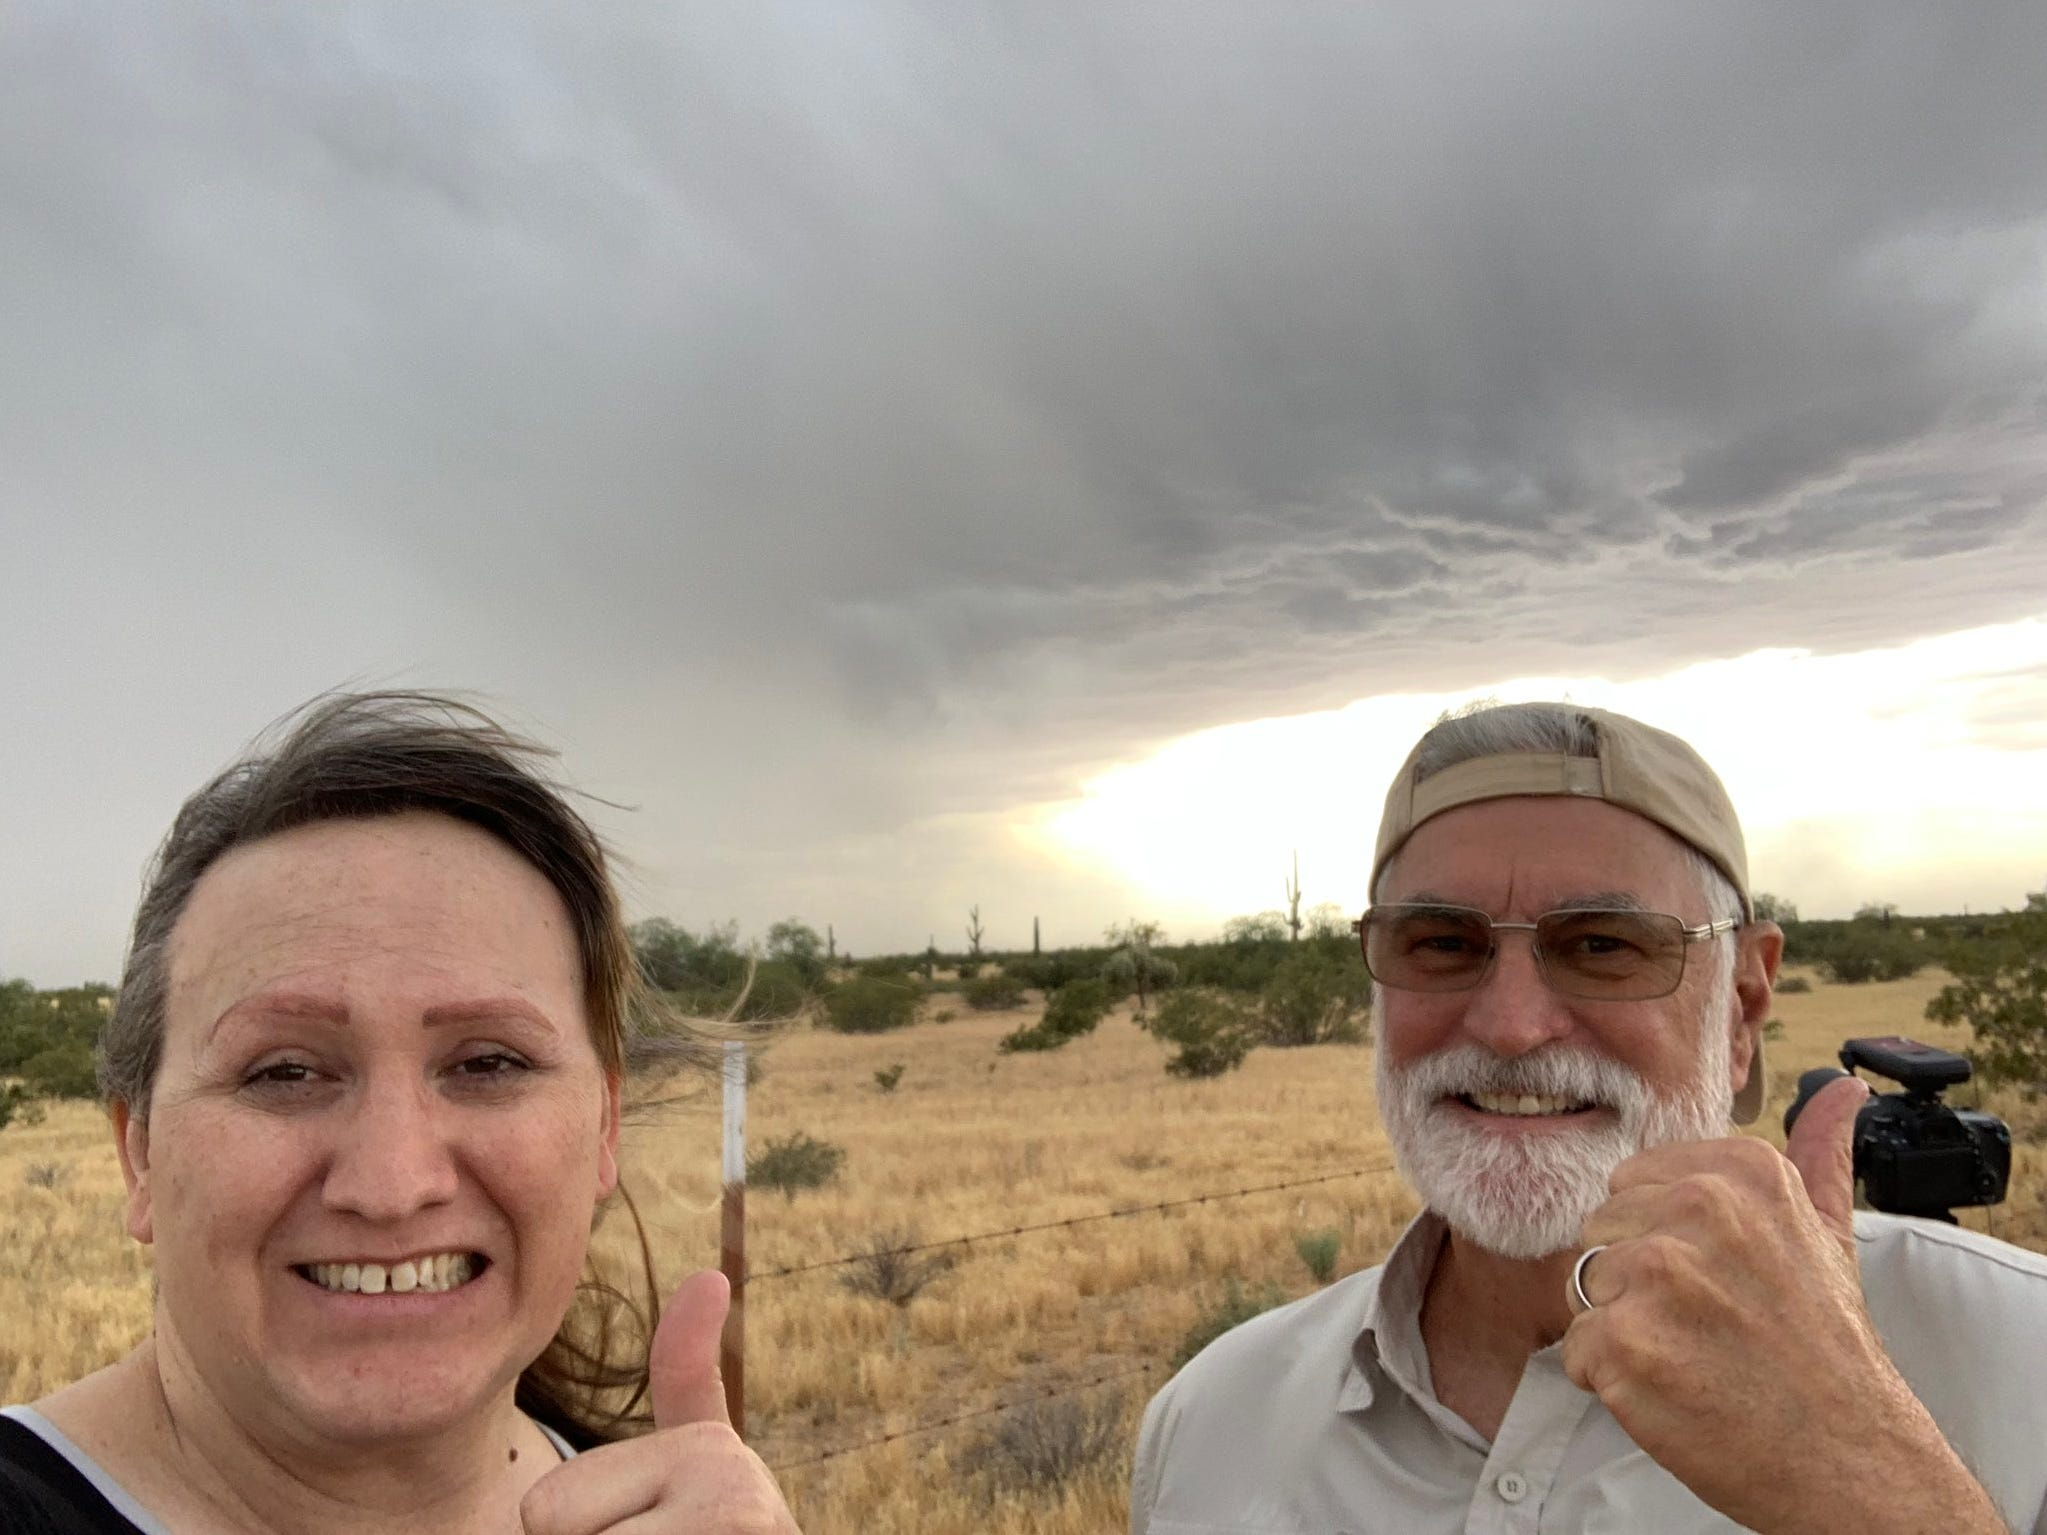 National Weather Service Skywarn Spotter Lori Grace Bailey and friend Dale Cupp smile with their thumbs up in front of storm clouds south of Florence on Tuesday, April 23, 2019.